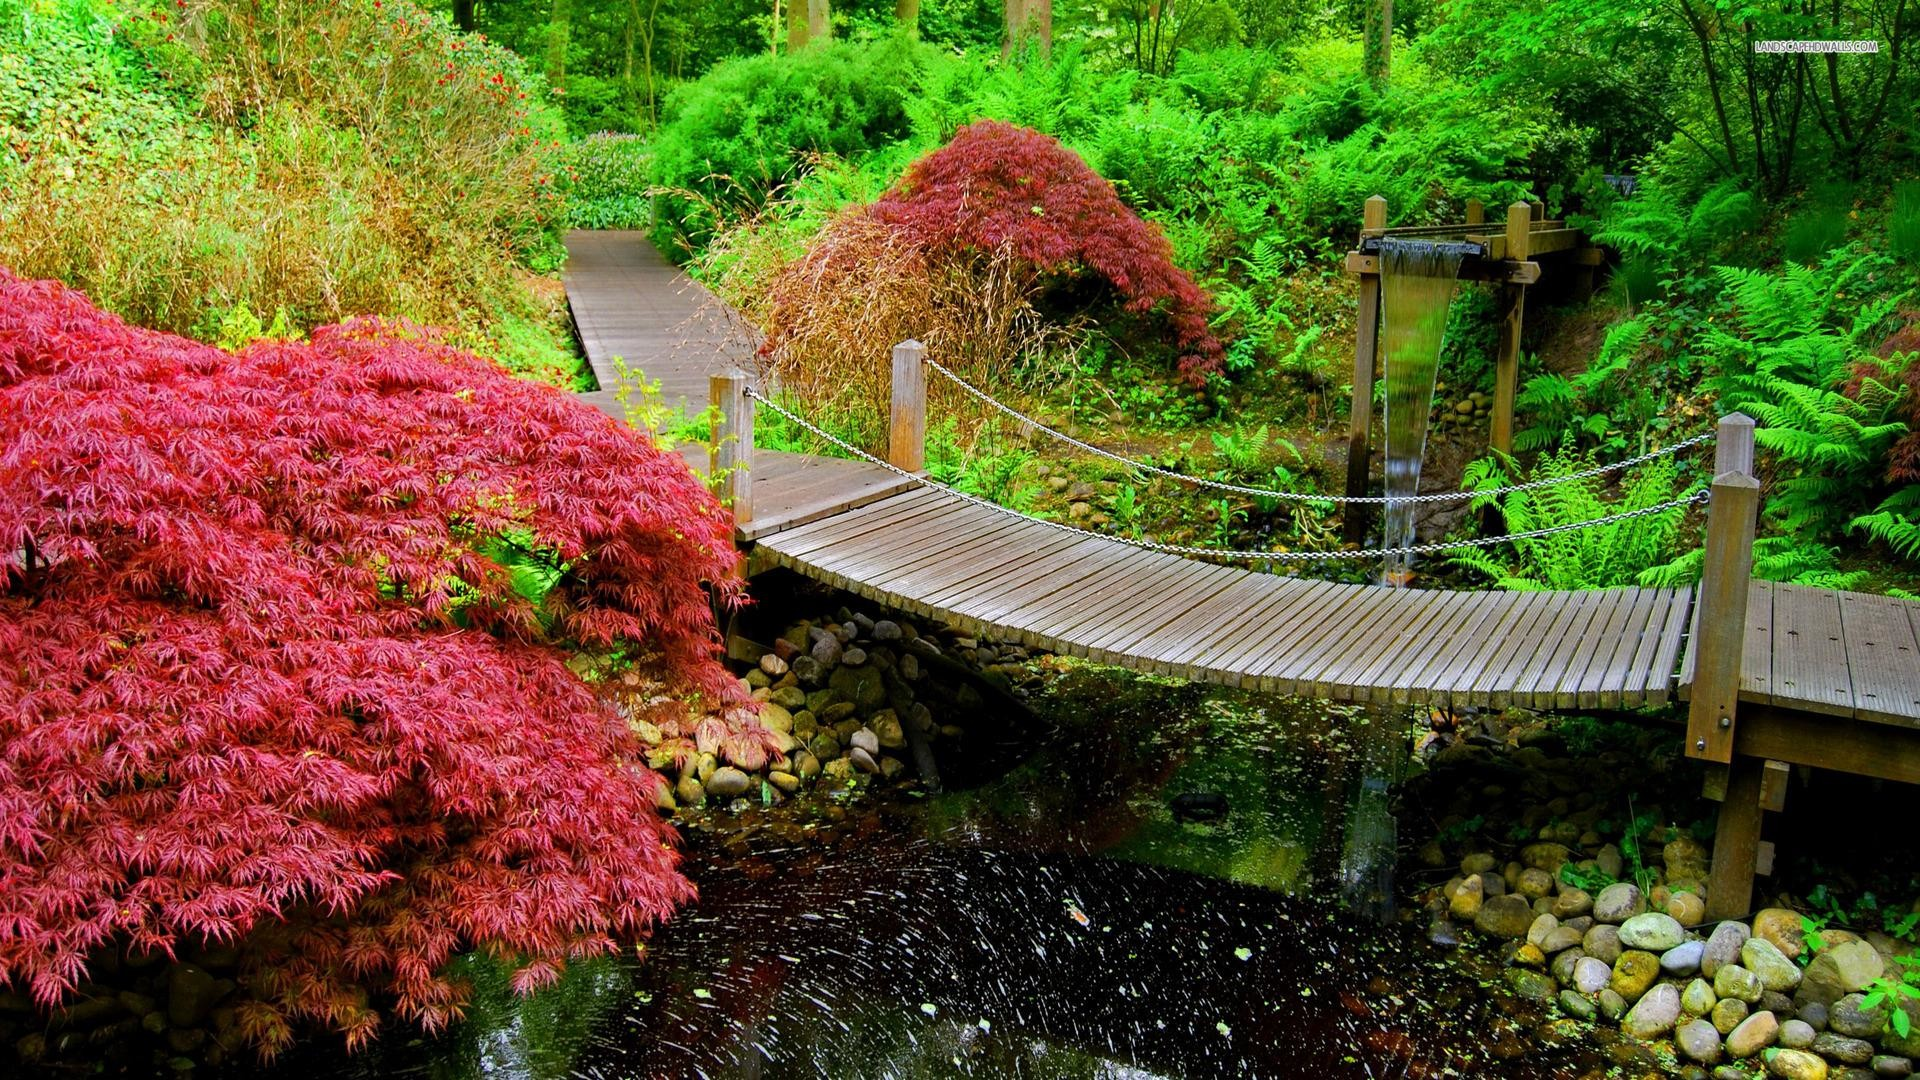 spring in japan wallpapers – page 3 of 3 – wallpaper.wiki